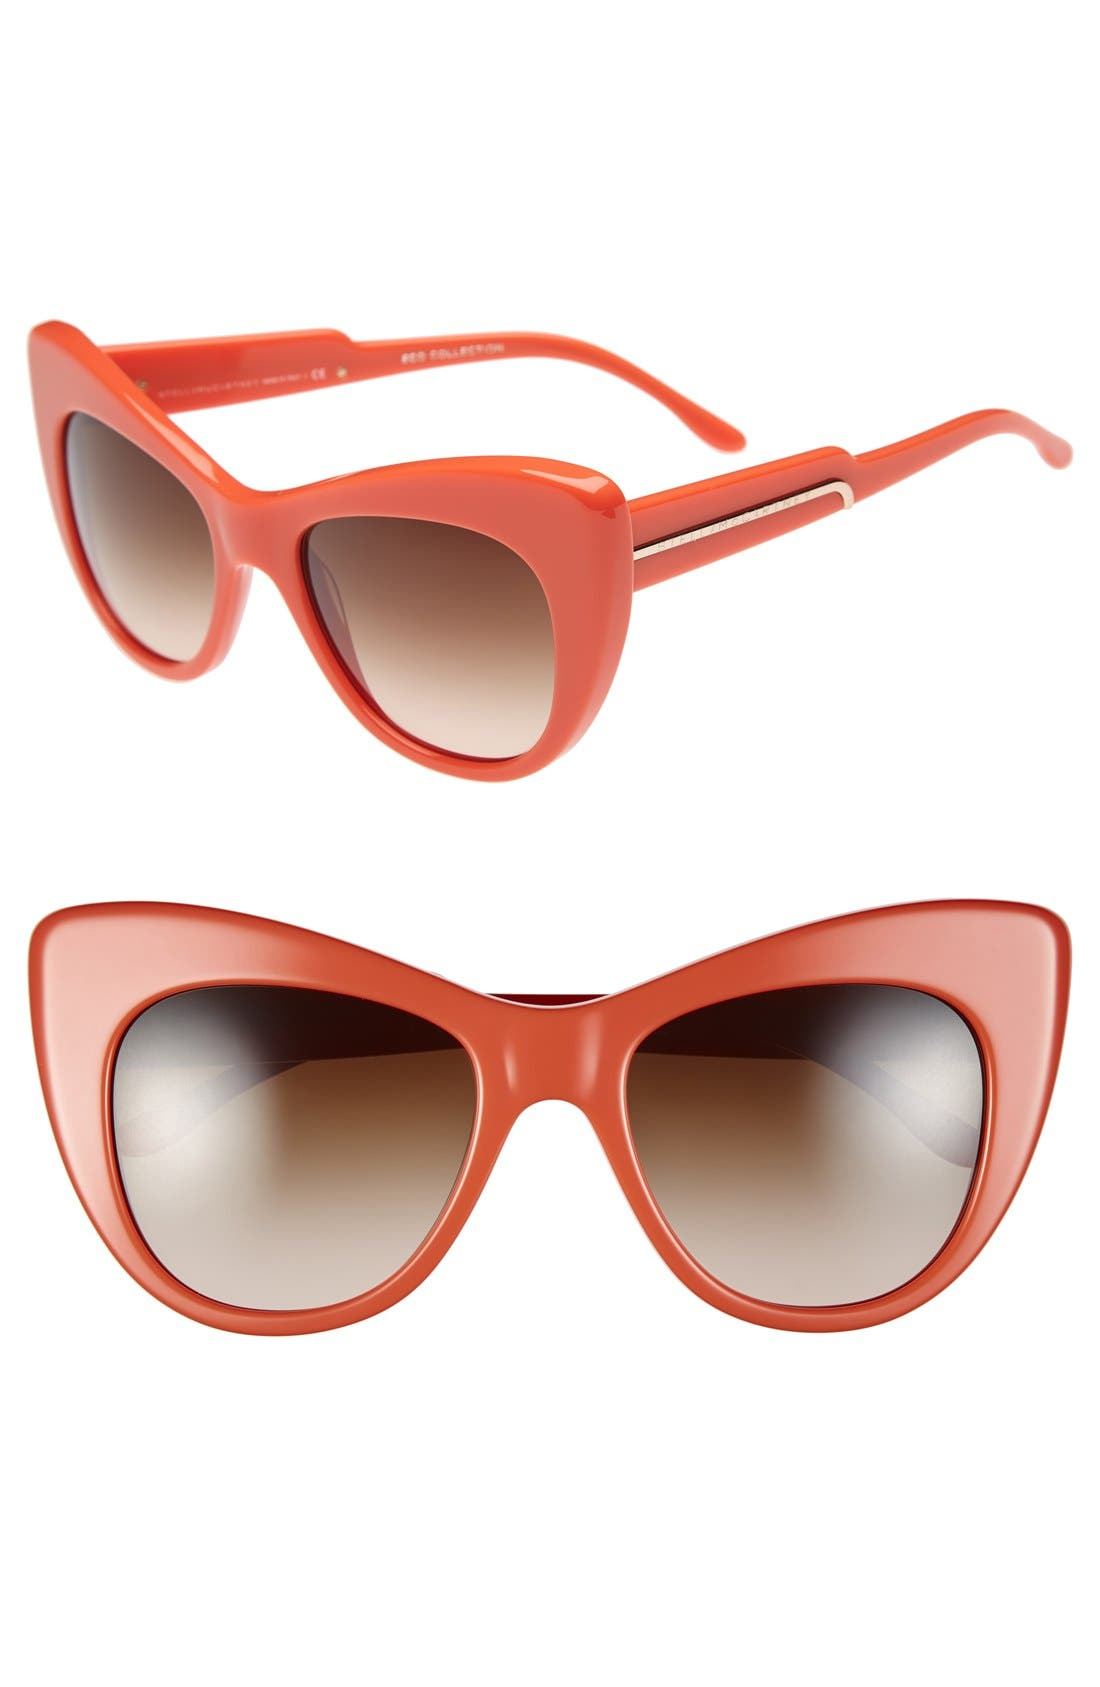 Main Image - Stella McCartney 54mm Cat Eye Sunglasses